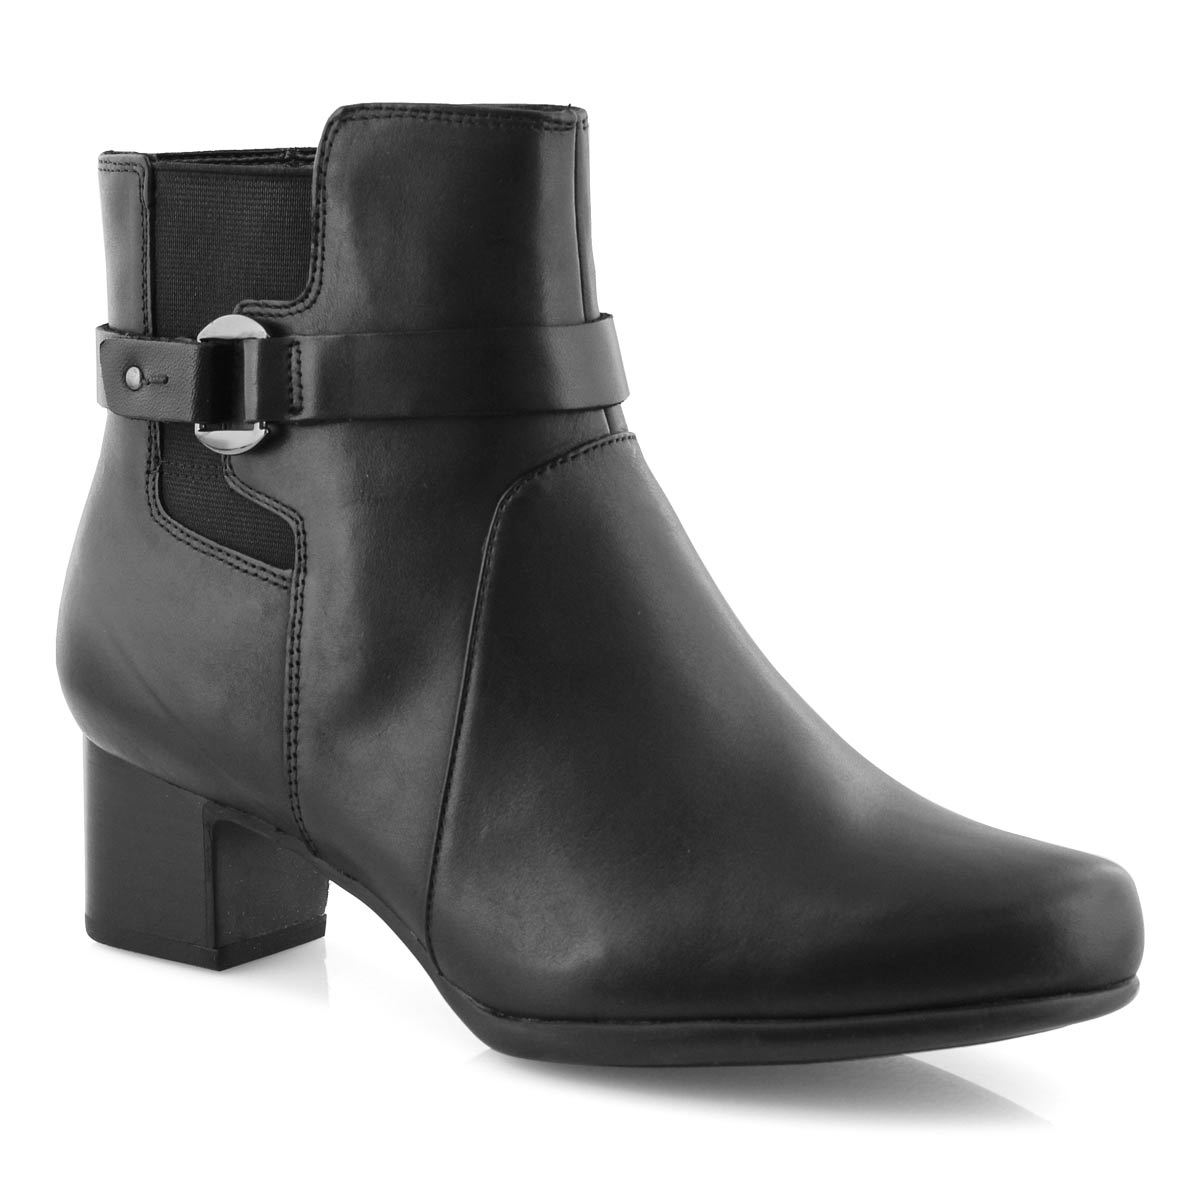 Women's UN DAMSON MID black ankle boot - WIDE